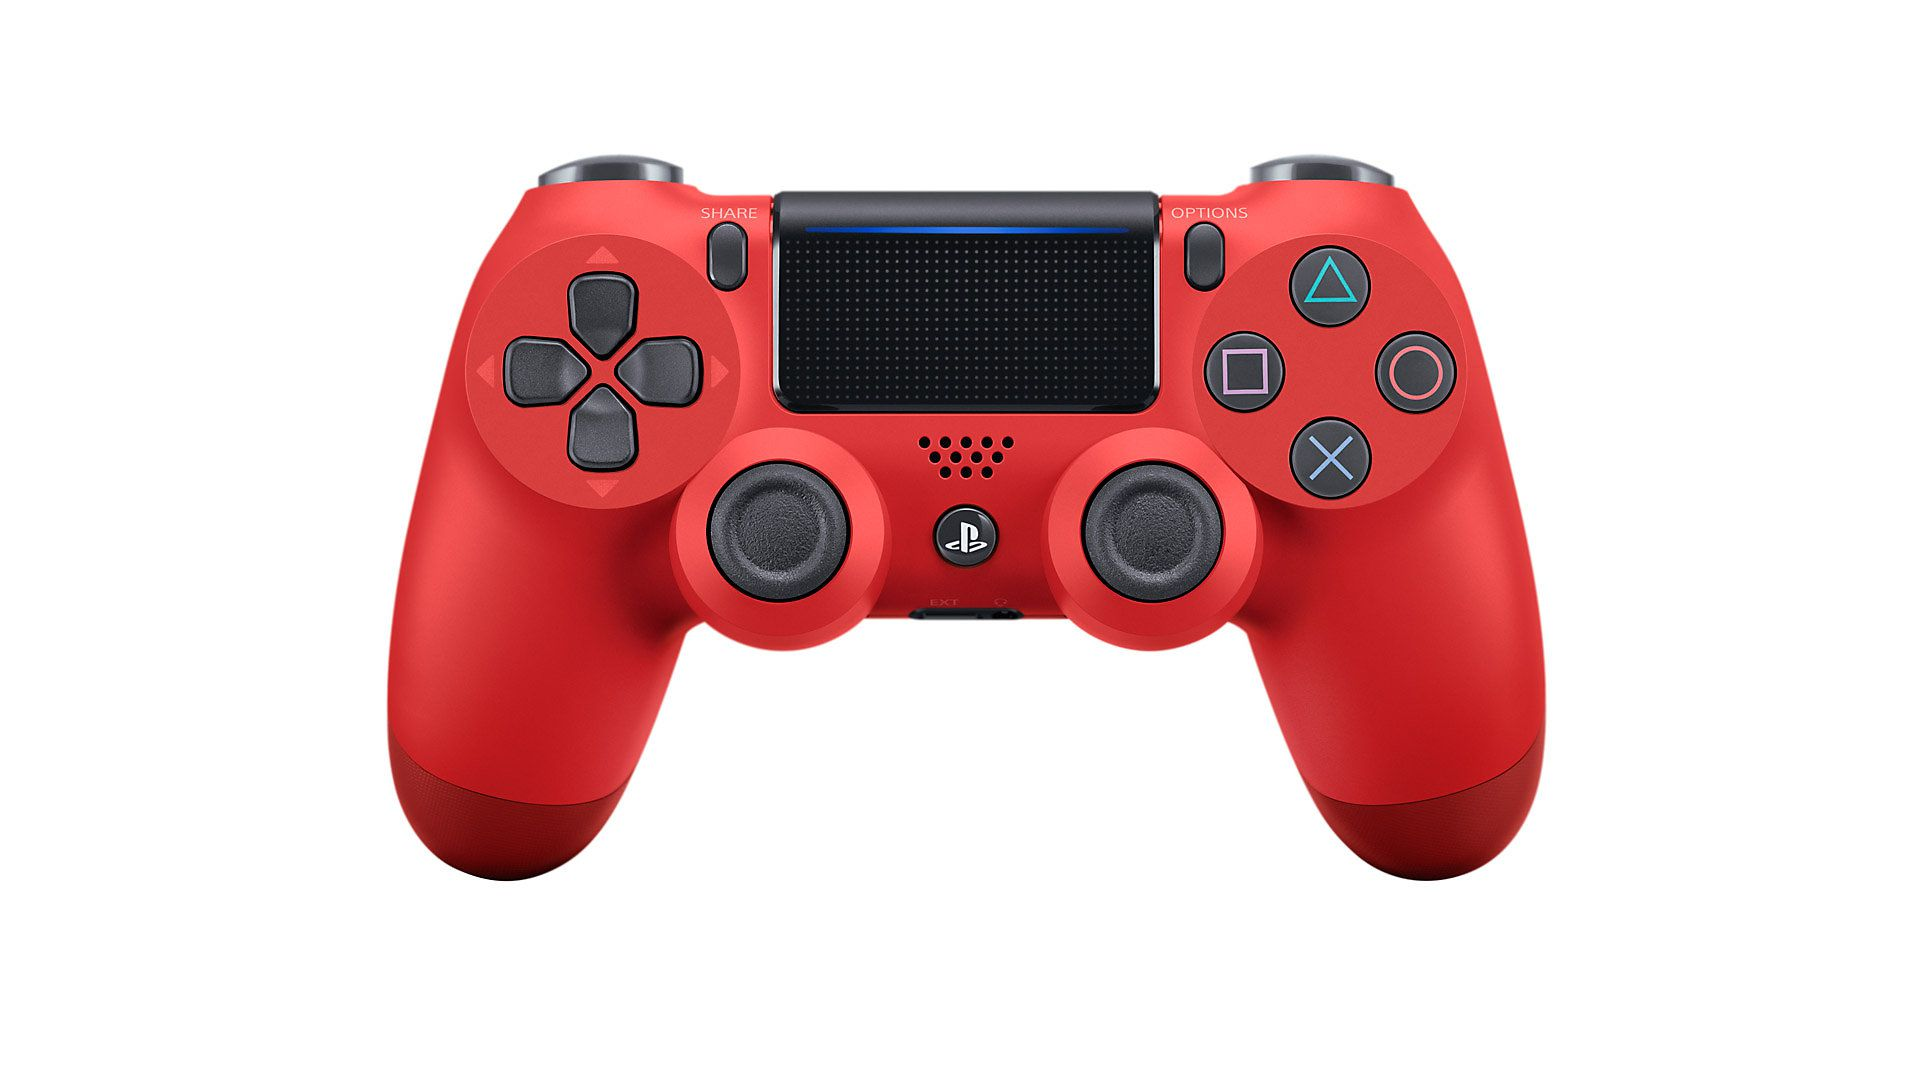 Red DualShock 4 controller for PS4